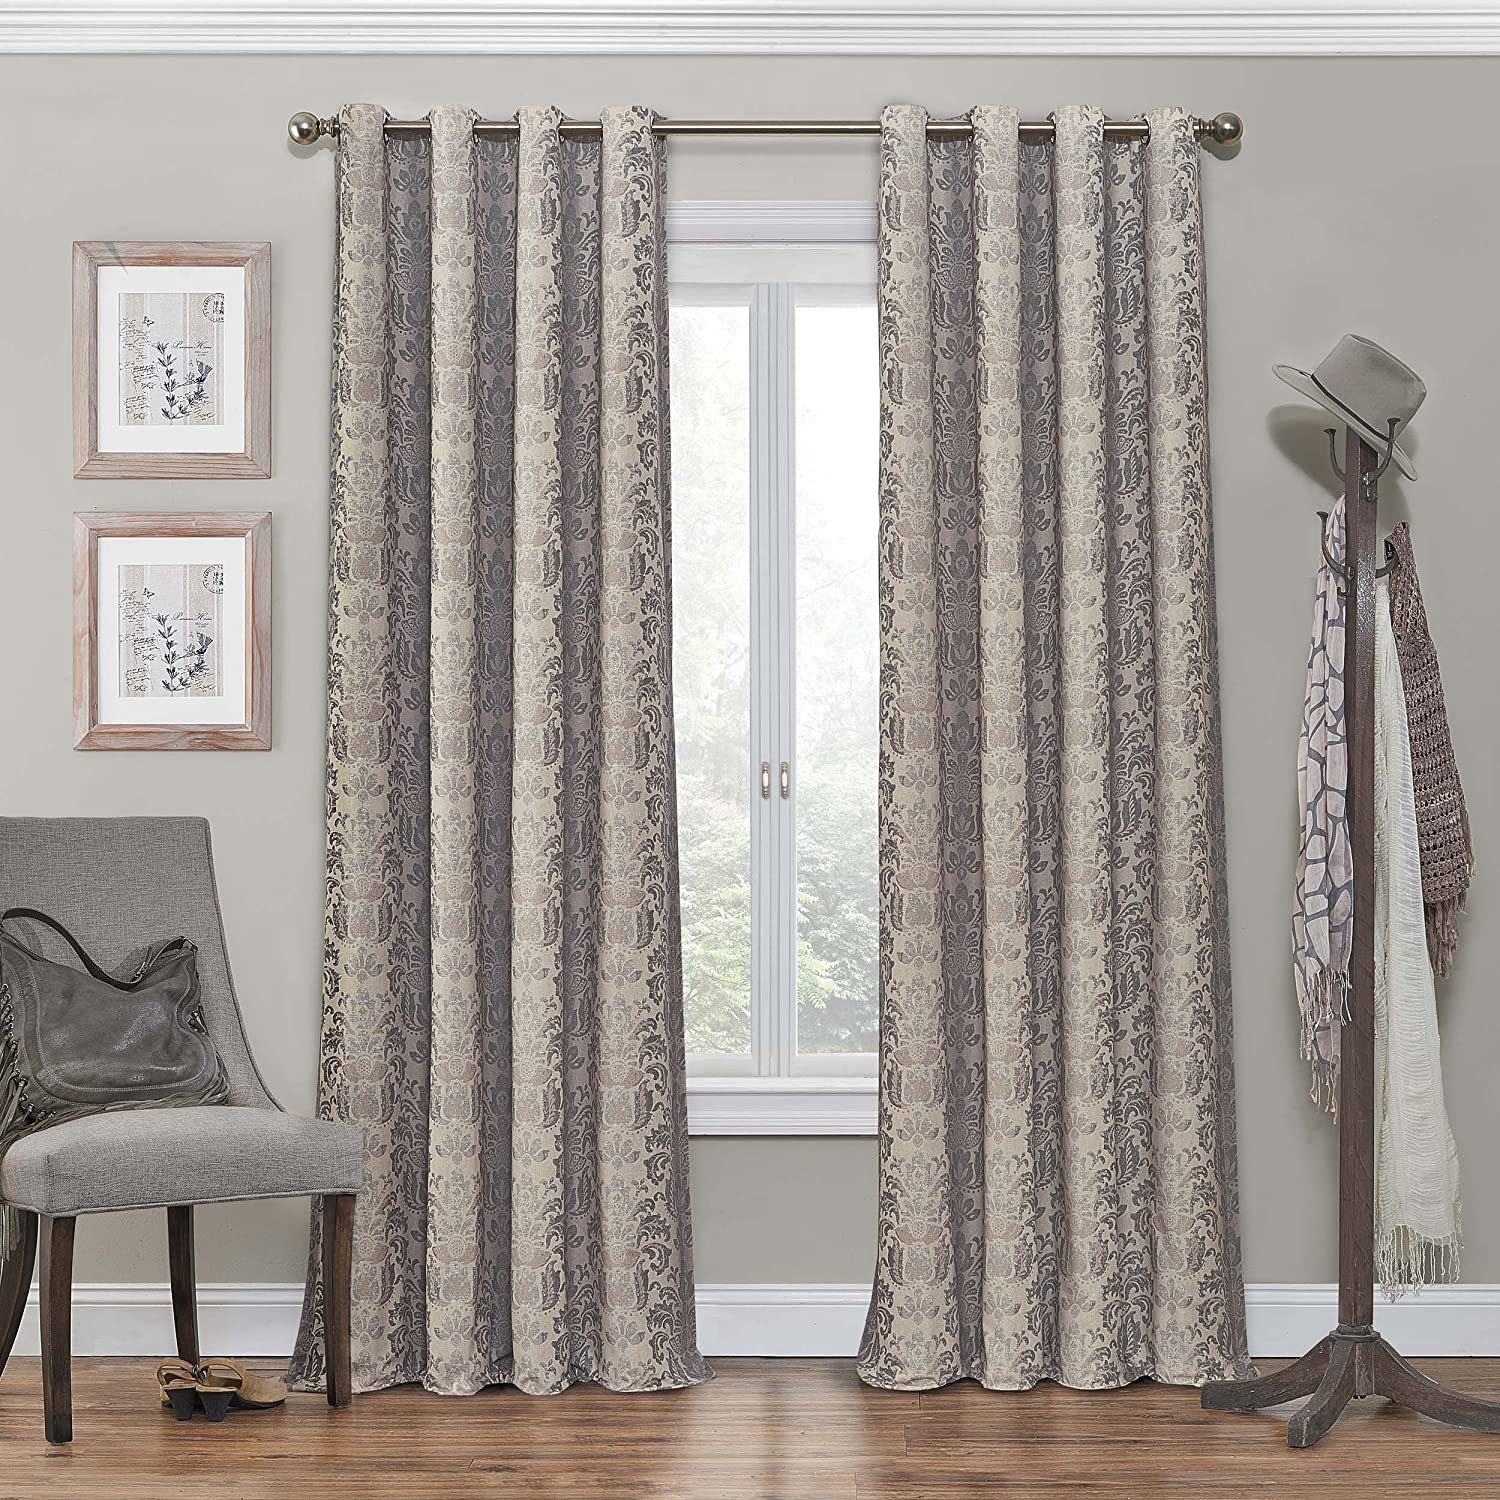 "Eclipse Nadya Print Thermal Insulated Single Panel Grommet Top Darkening Curtains for Living Room, 52"" x 84"", Linen"